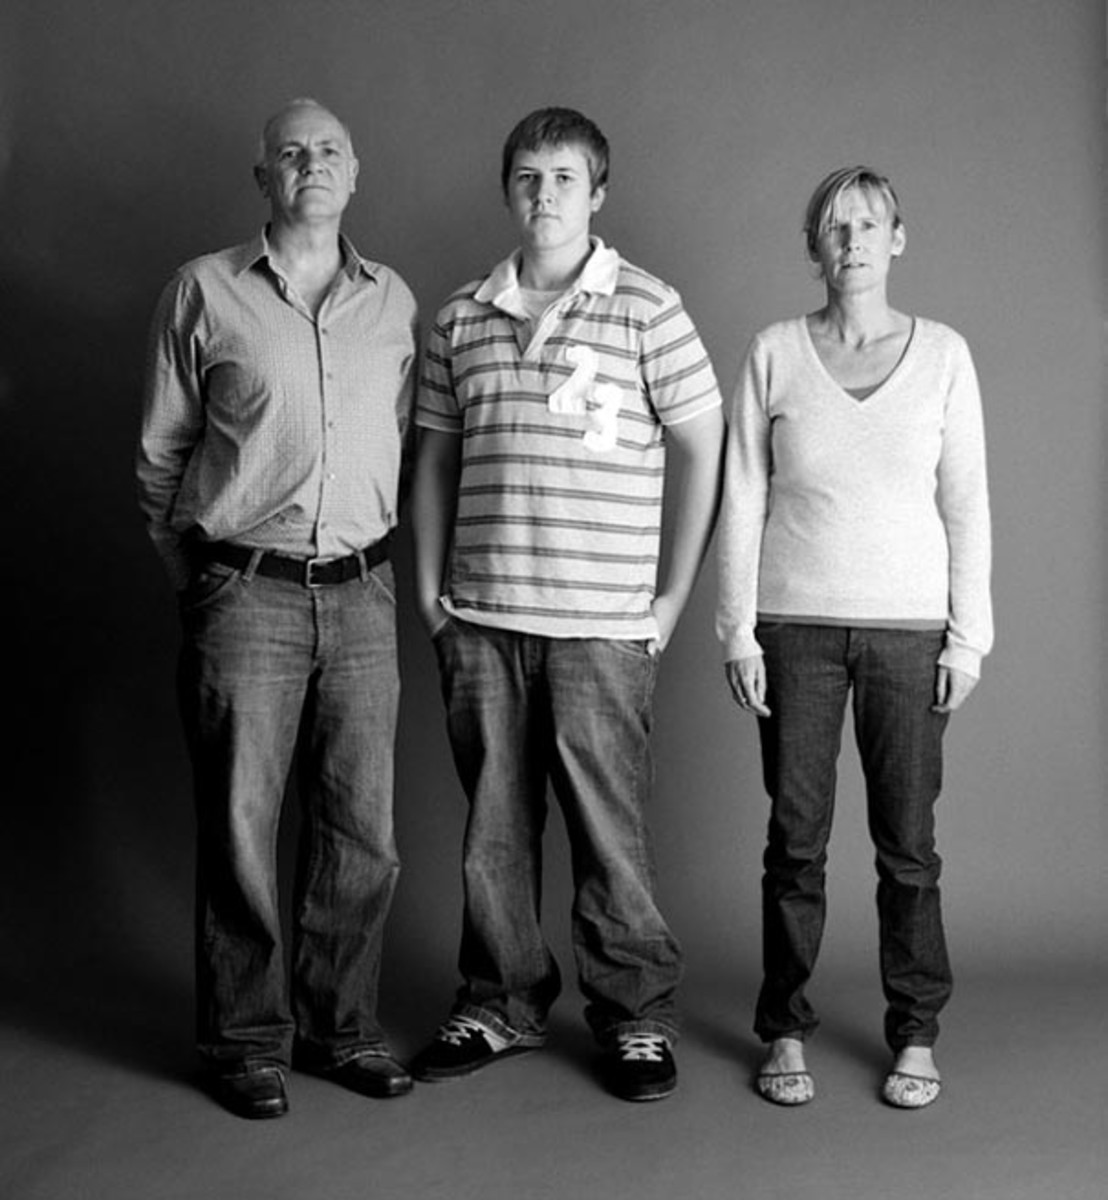 the-family-aging-photo-series-16